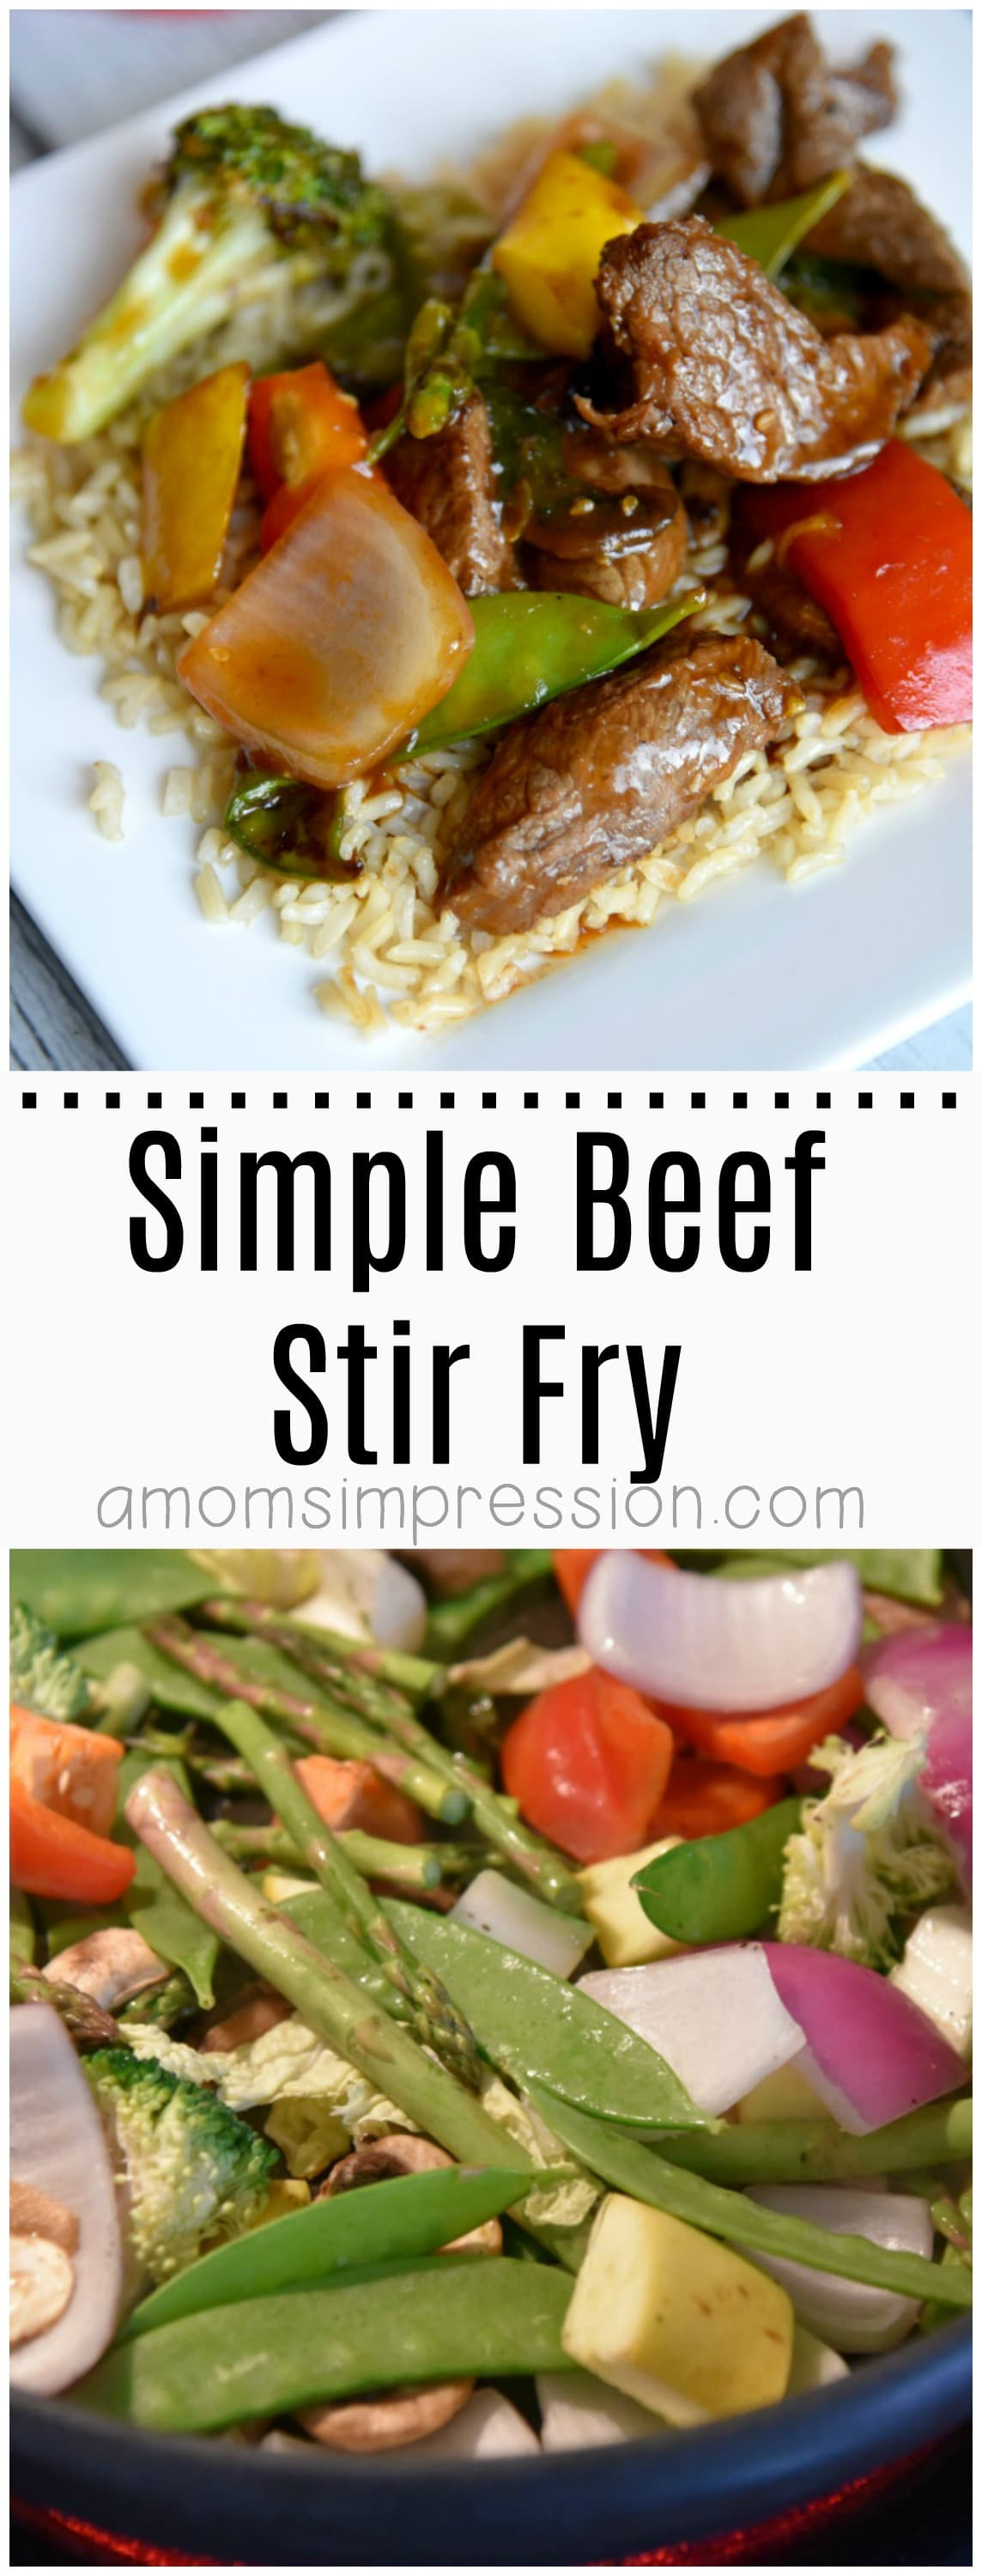 This 20-minute simple beef stir fry is easy, healthy and delicious. Filled with veggies and served over brown rice it will become a favorite recipe for your family.